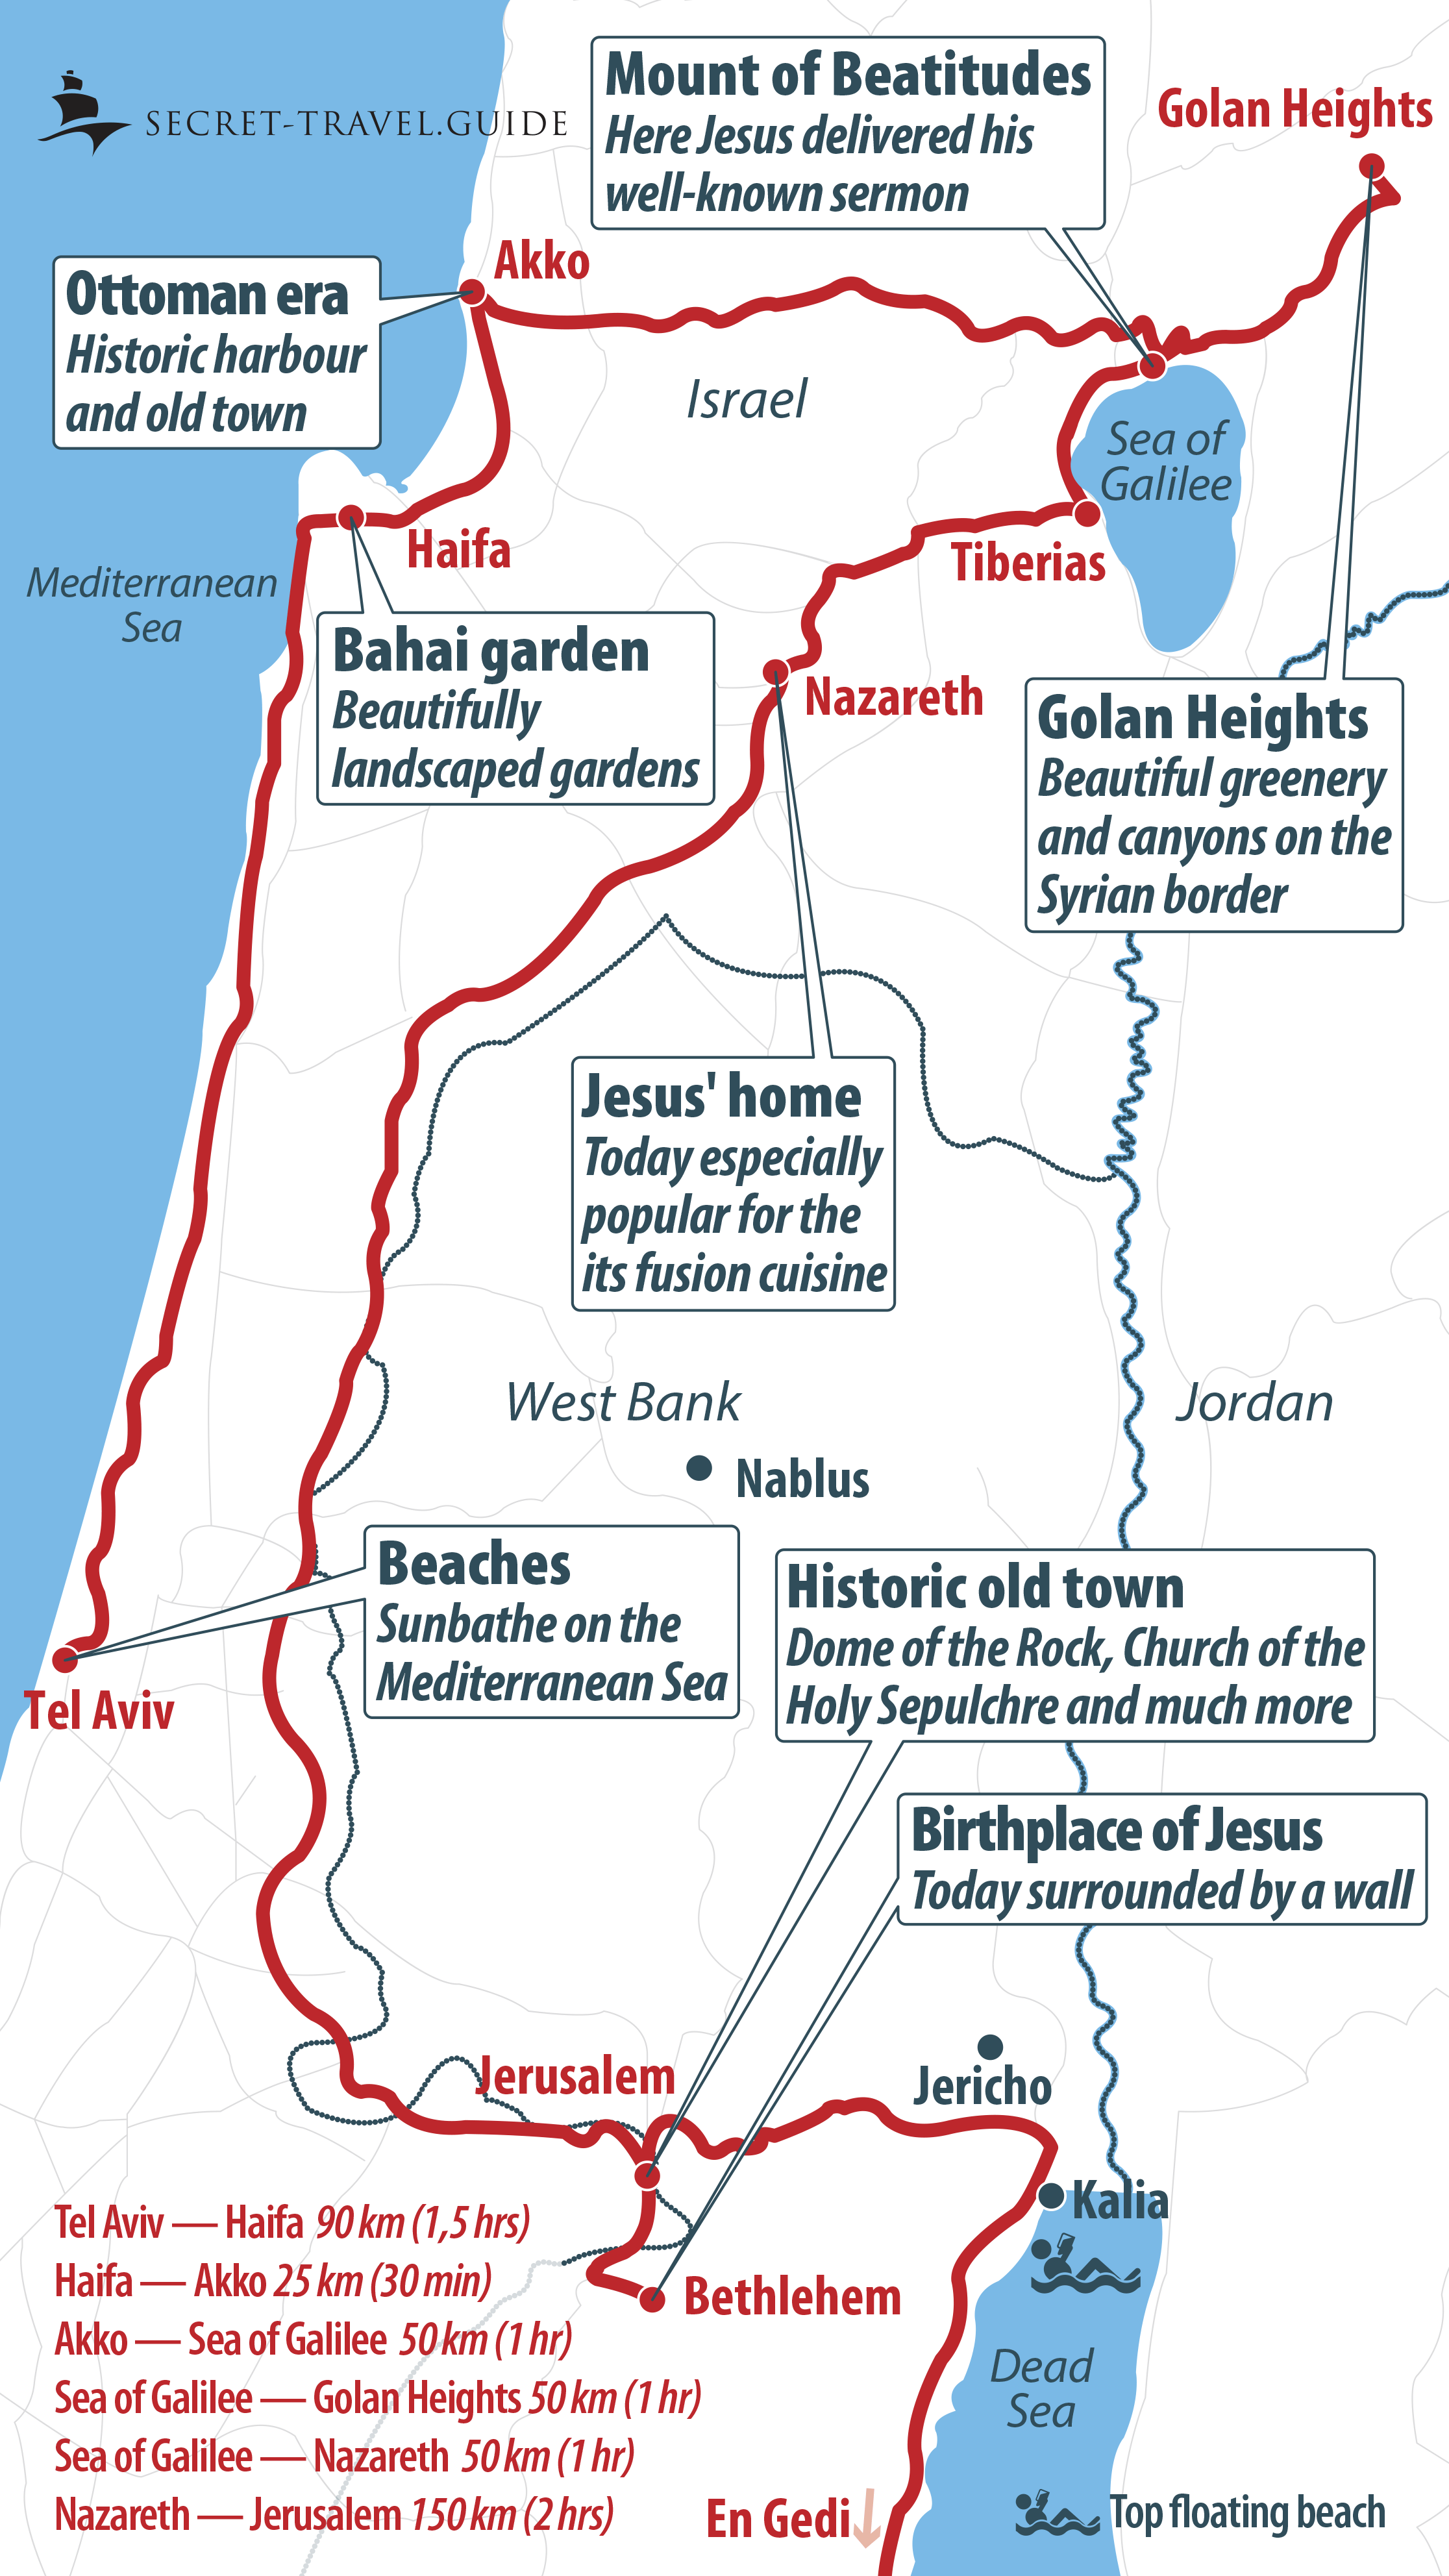 Roundtrip to Israel and Palestine — secret-travel.guide on map during jesus' time, map of euphrates in biblical time, map of egypt and israel in biblical time, map of israel at jesus time, map of the land jesus, map of the world in jesus time, sea of galilee in jesus time, bethlehem during jesus' time, map of egypt in jesus time, map of roman empire in jesus time, map of time zones in us, map of syria in jesus time, map of caesarea philippi in jesus time, map holy land israel, map of nazareth in jesus time, map of mediterranean in jesus time, bible fullness of time, map of jordan in jesus time, map of judea in jesus time, palestine in christ's time,